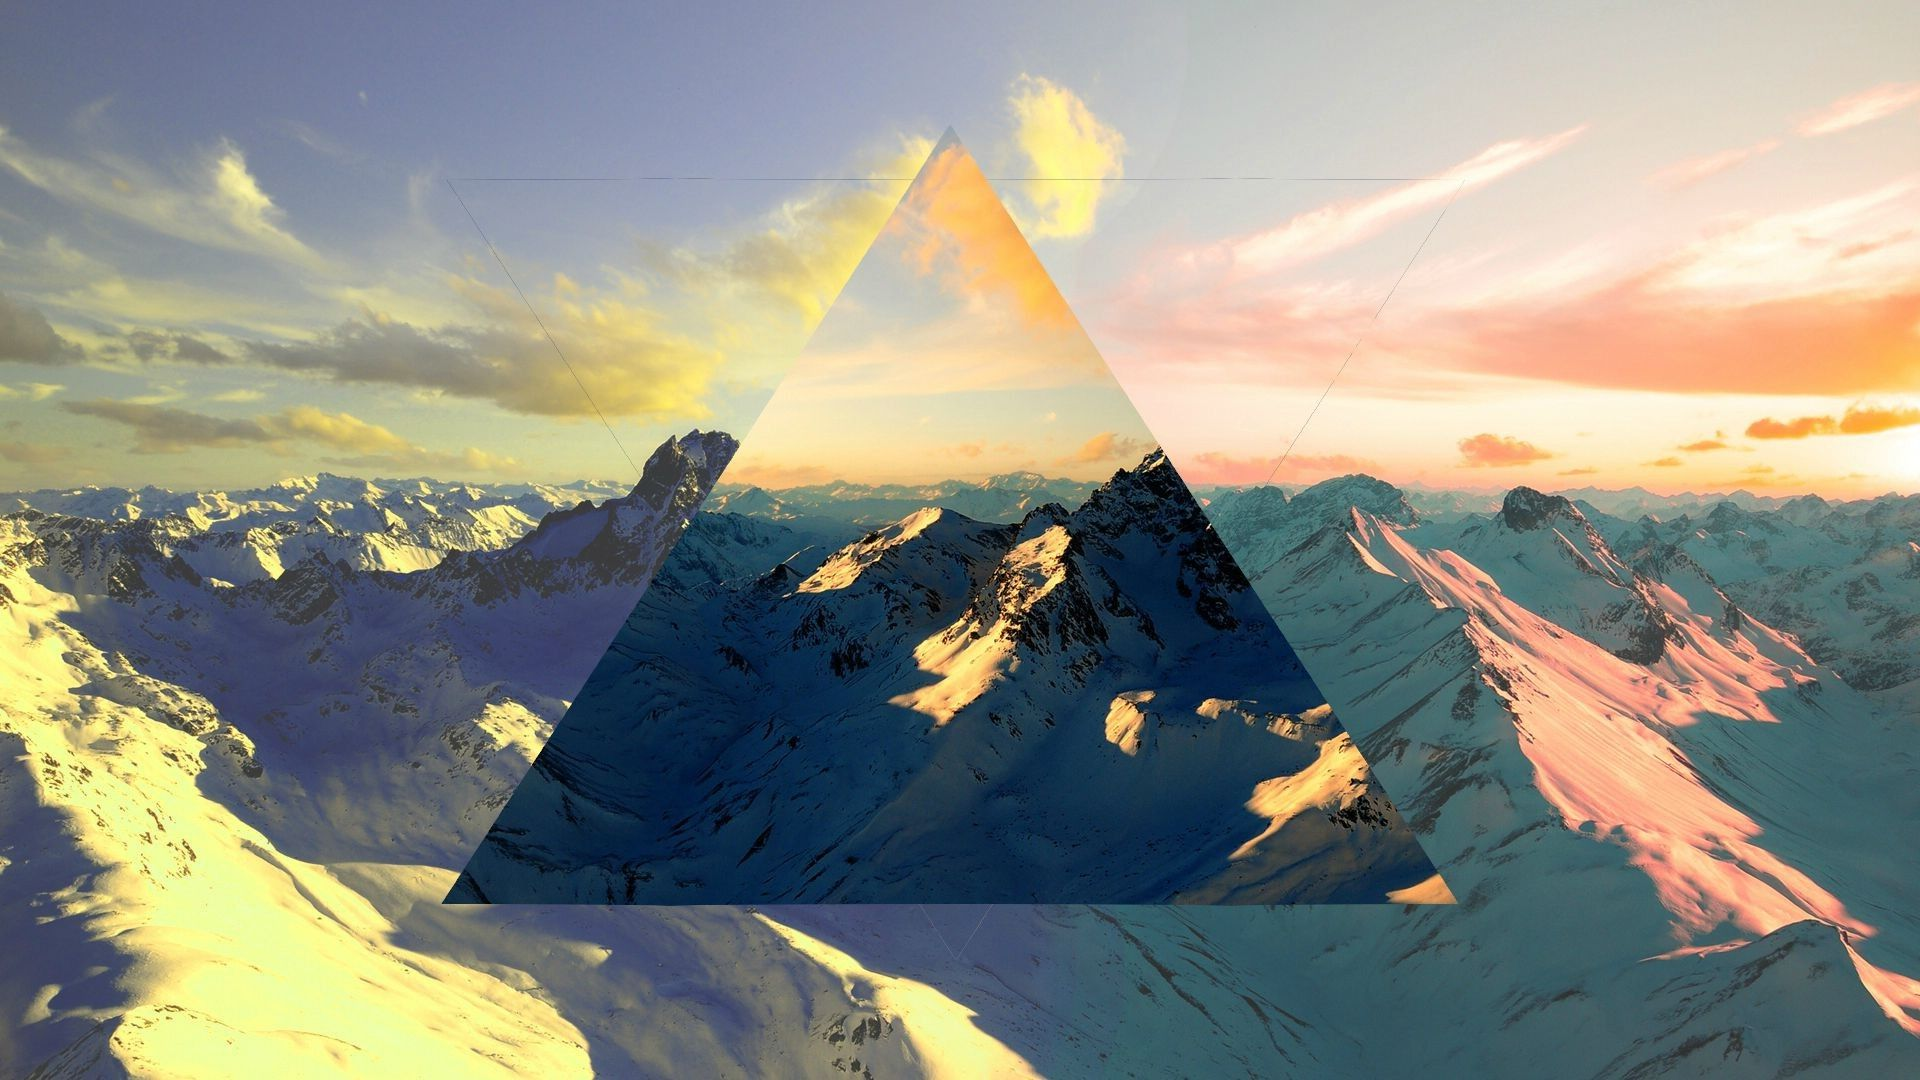 Polyscape Abstract Nature Mountain Wallpaper Desktop Background Images Abstract Nature Abstract